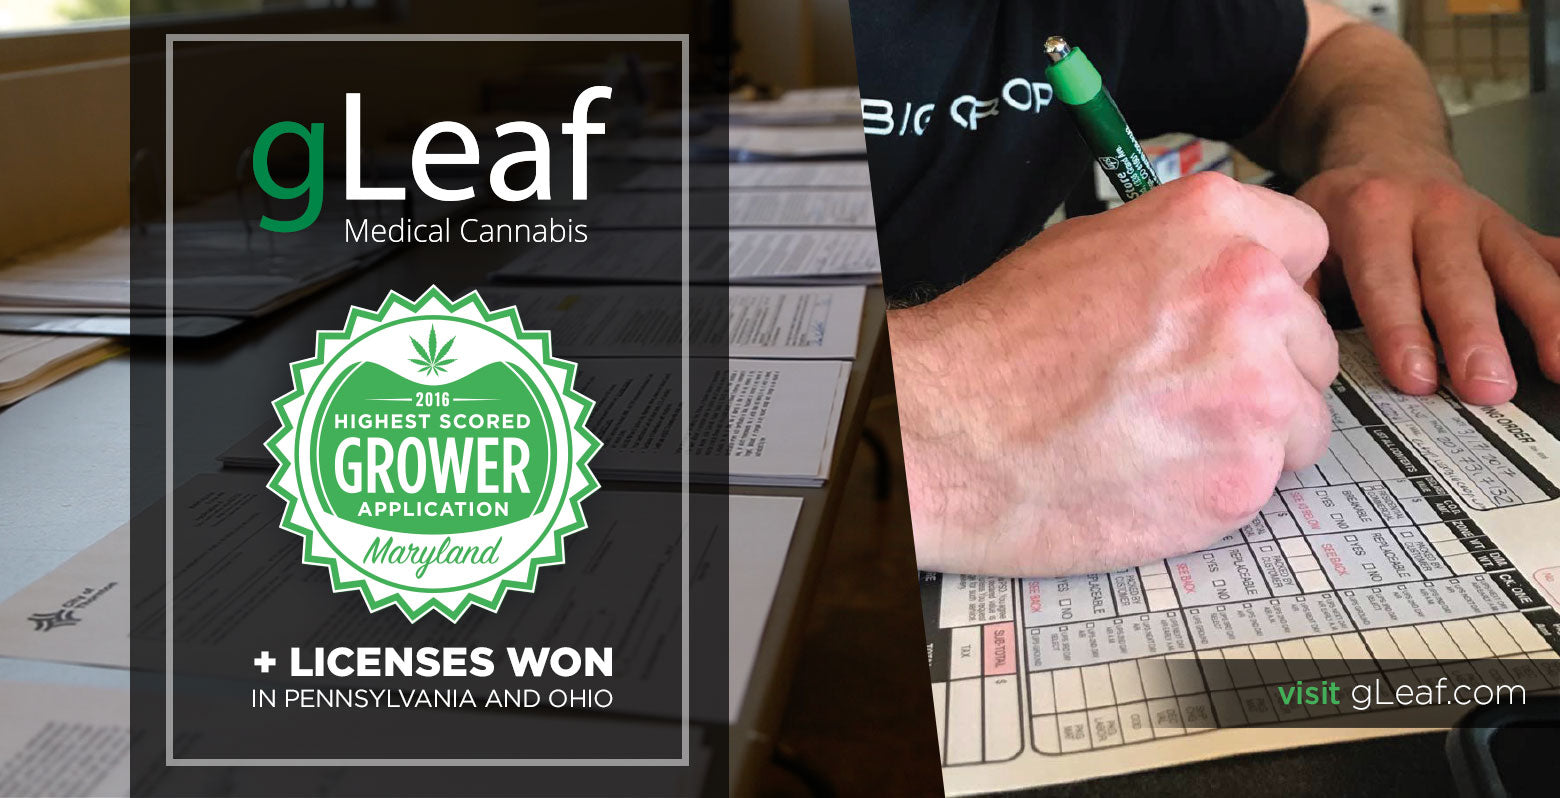 gLeaf Medical Cannabis 2016 Highest Scored Grower Application in Maryland with Licenses won in Pennsylvania and Ohio